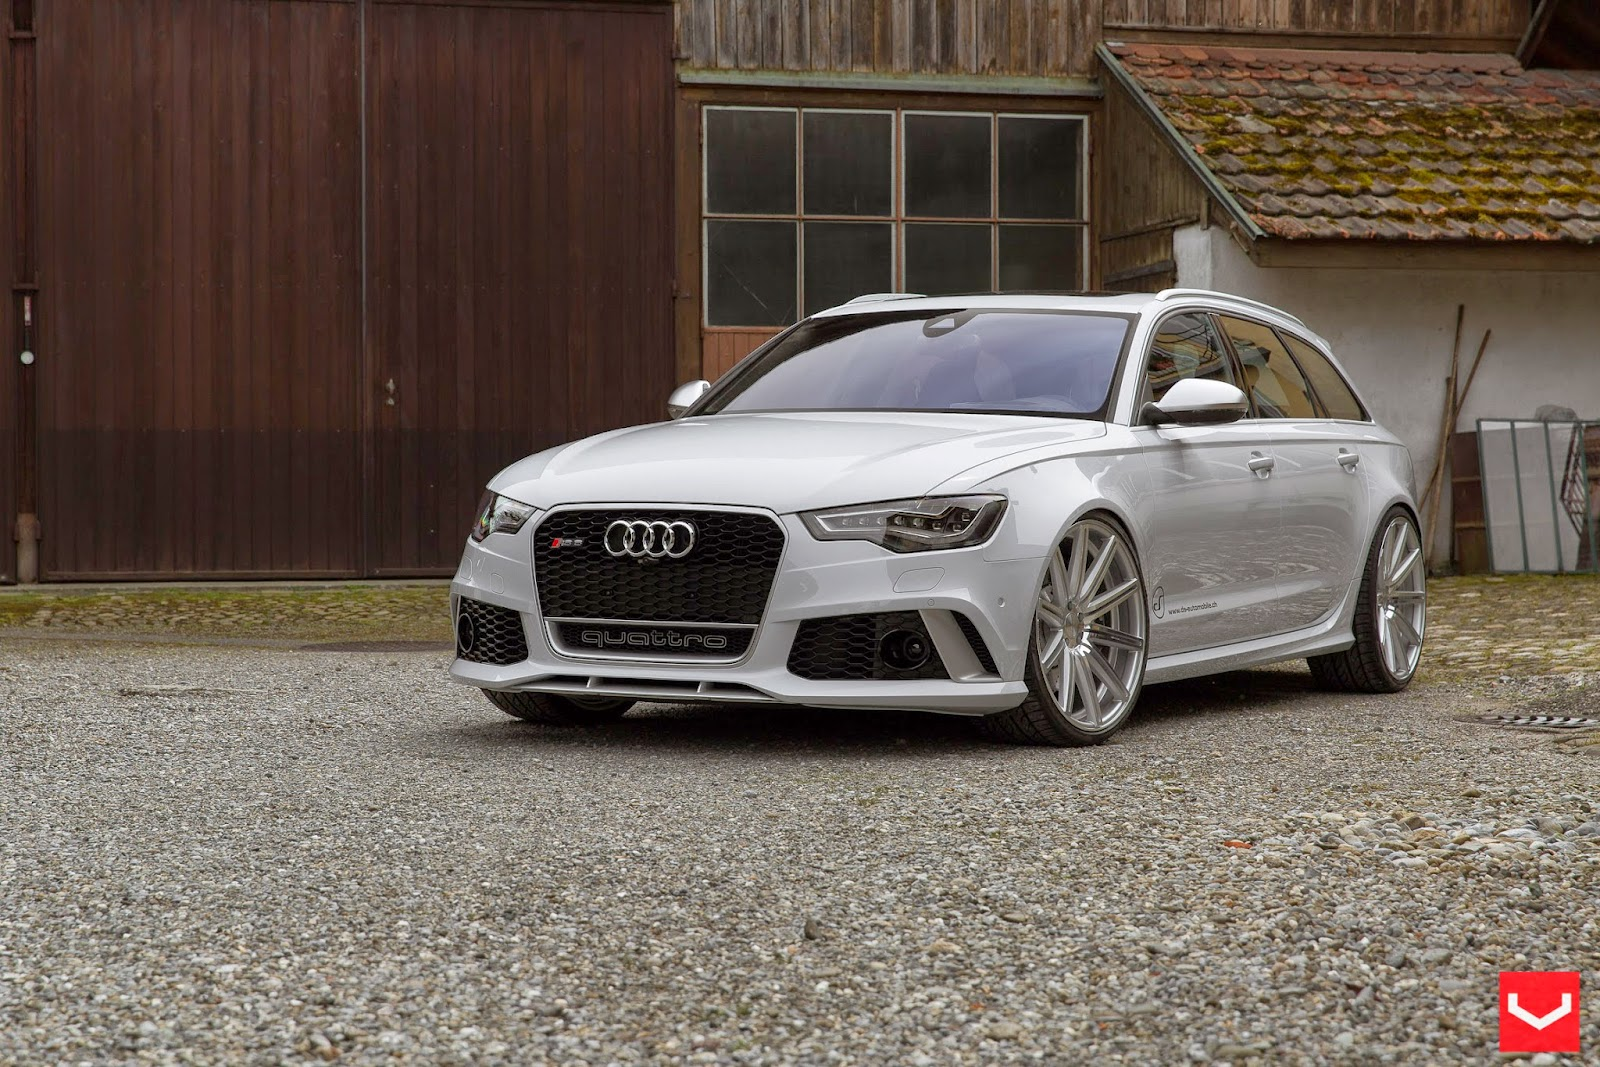 Audi q7 suv vossen wheels tuning cars wallpaper - Audi Rs6 Vossen Wheels Don T Let Curbrash Ruin Your Ride Protect It With Wheelbands From Rvinyl Cars Pinterest Vossen Wheels Audi Rs6 And Wheels